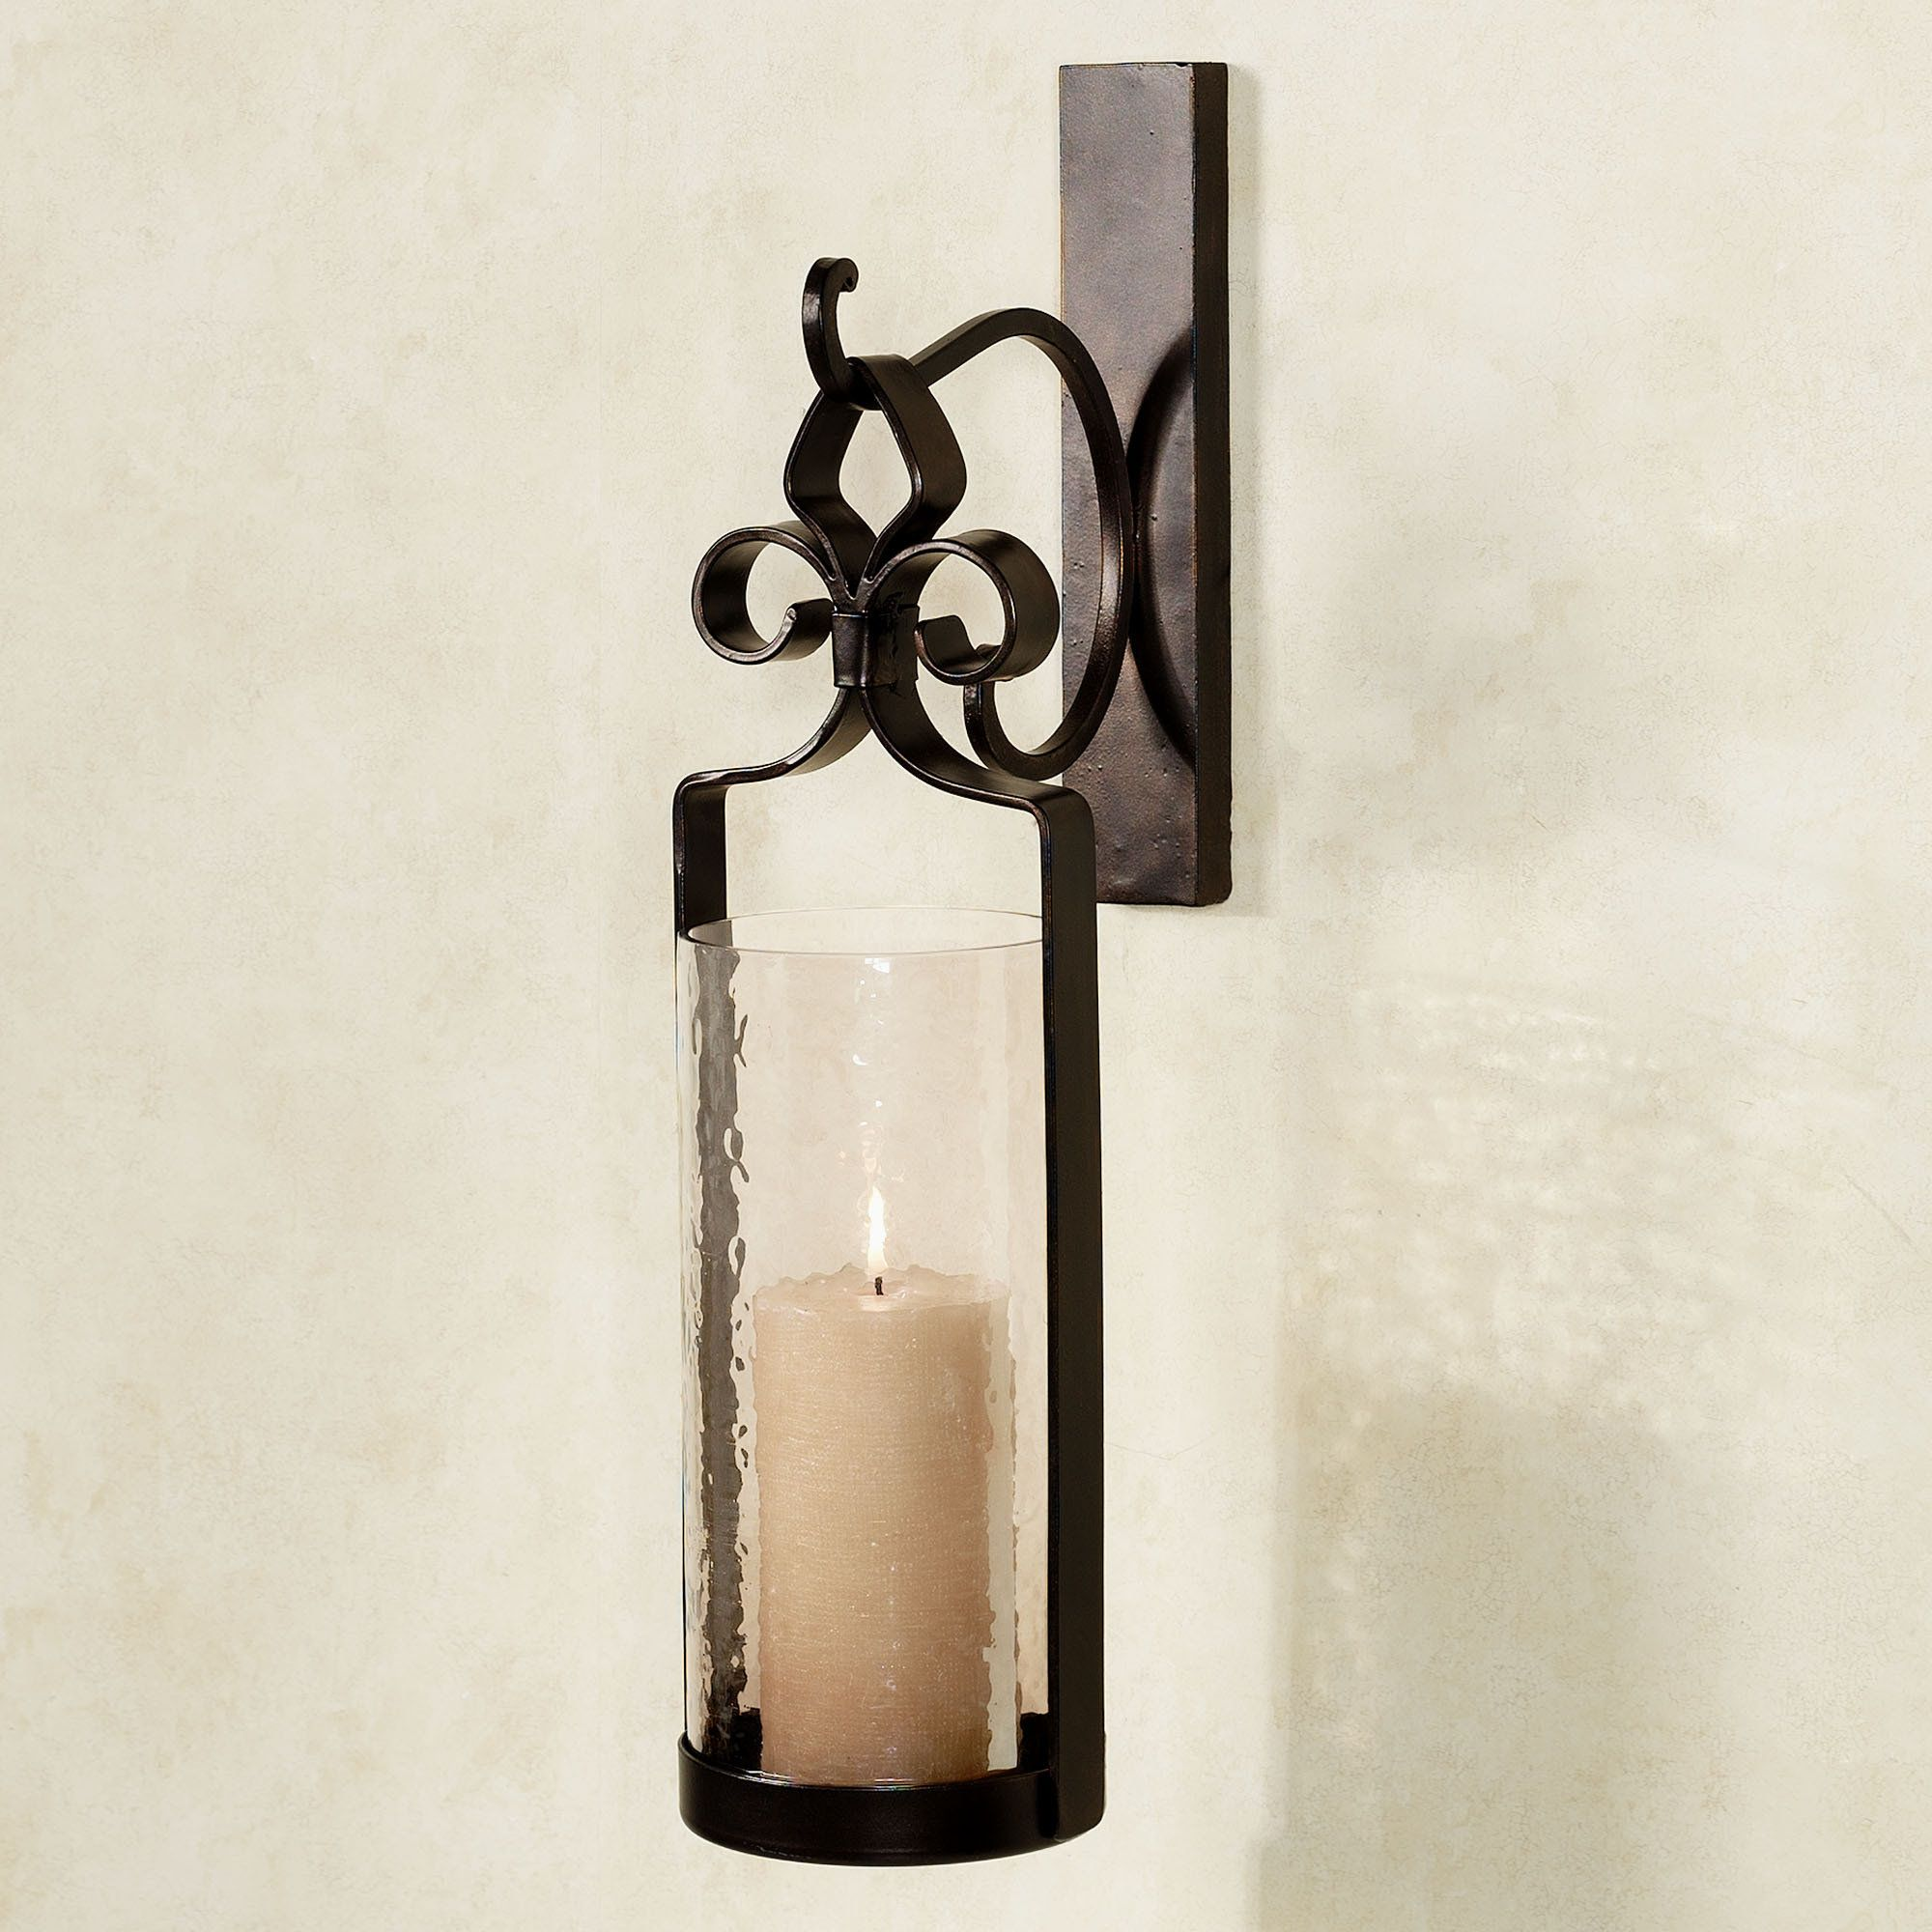 sconce l decor decorative wall mason holder jar candle sconces galleries wrought iron hanging